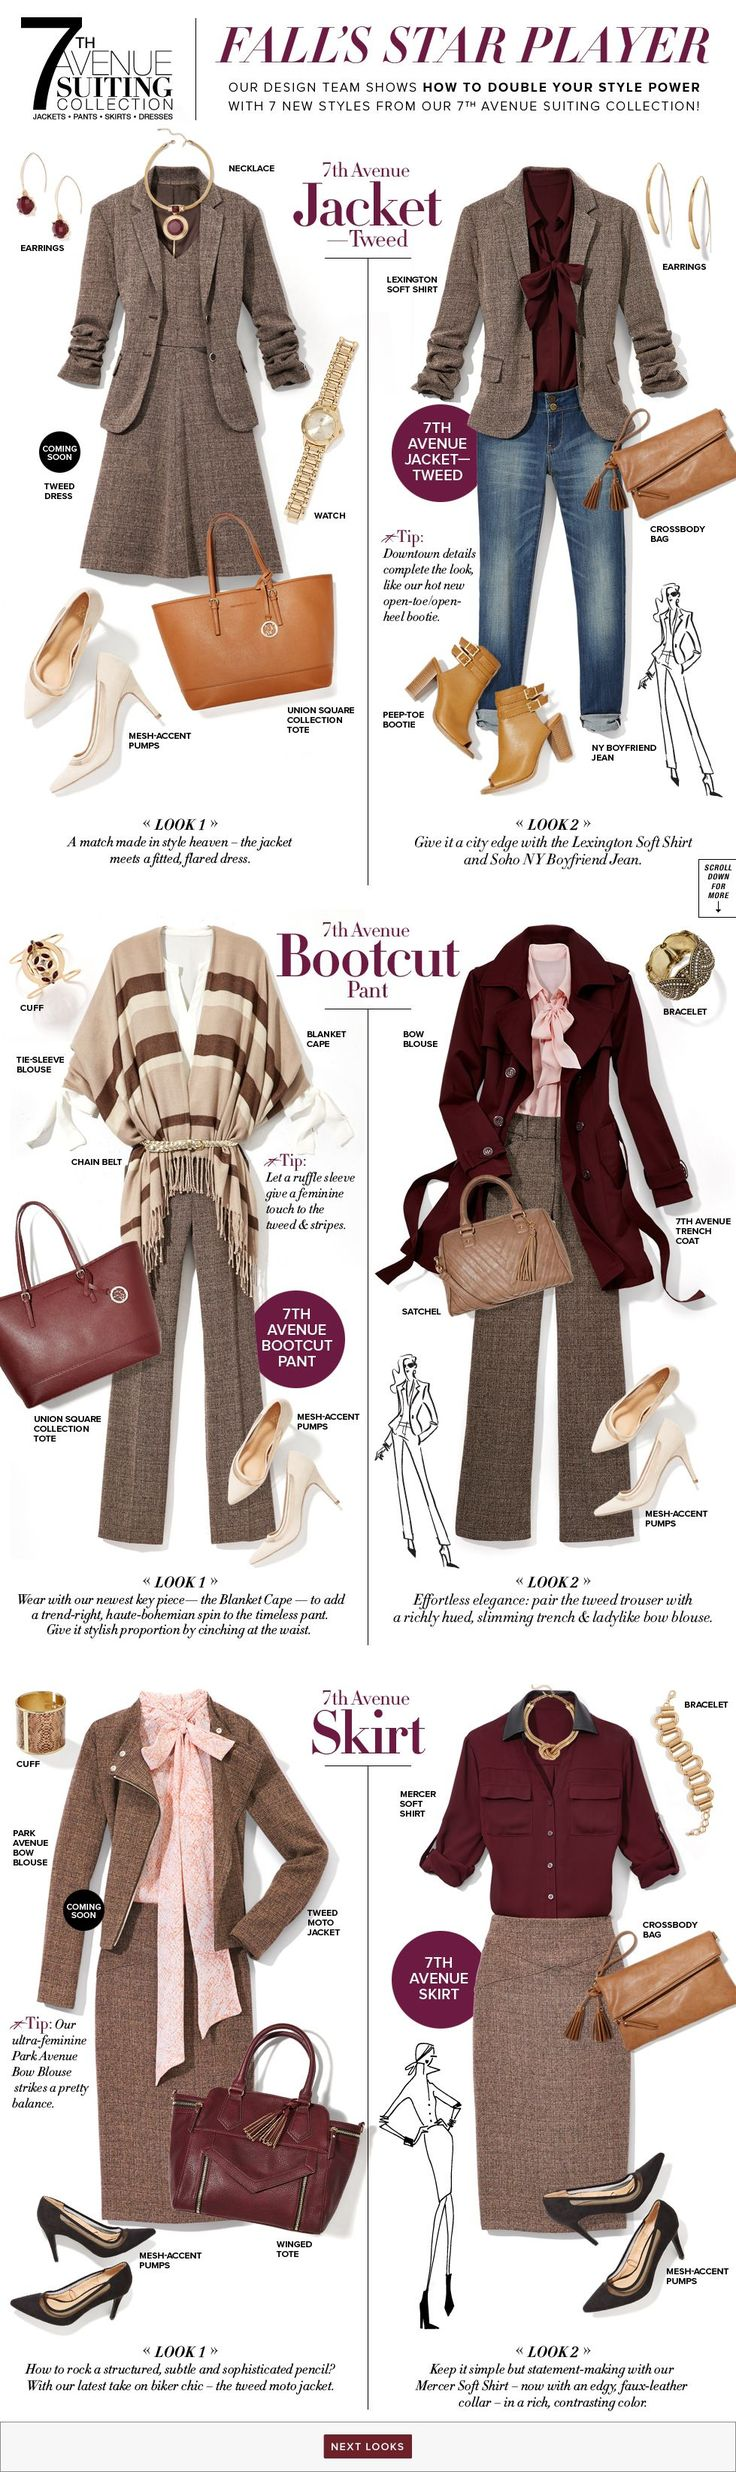 Love the tweed dress and the bottom right look.